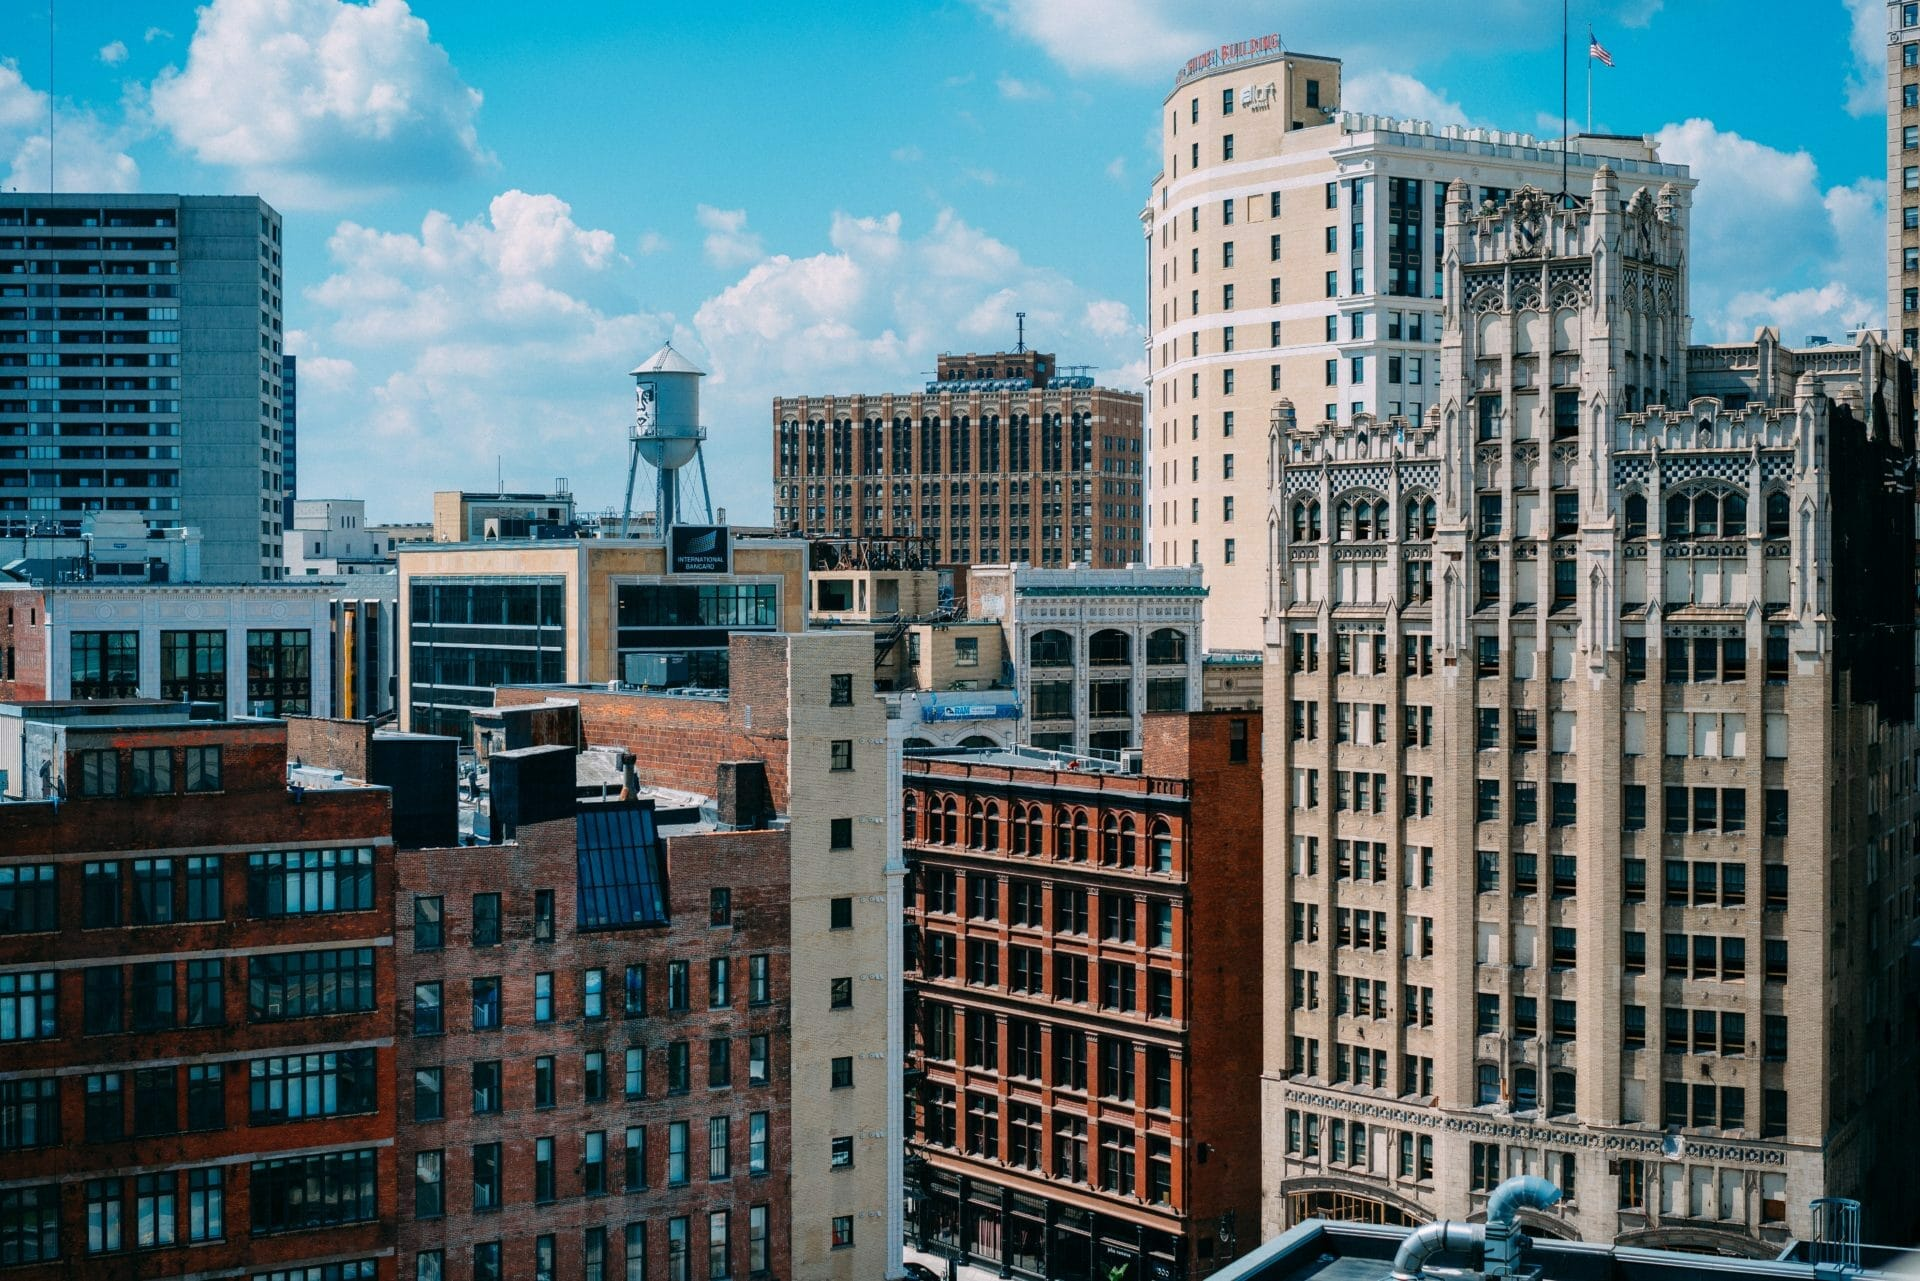 Picture of buildings in Detroit, USA for or Real Estate News for Investors Podcast Episode #490